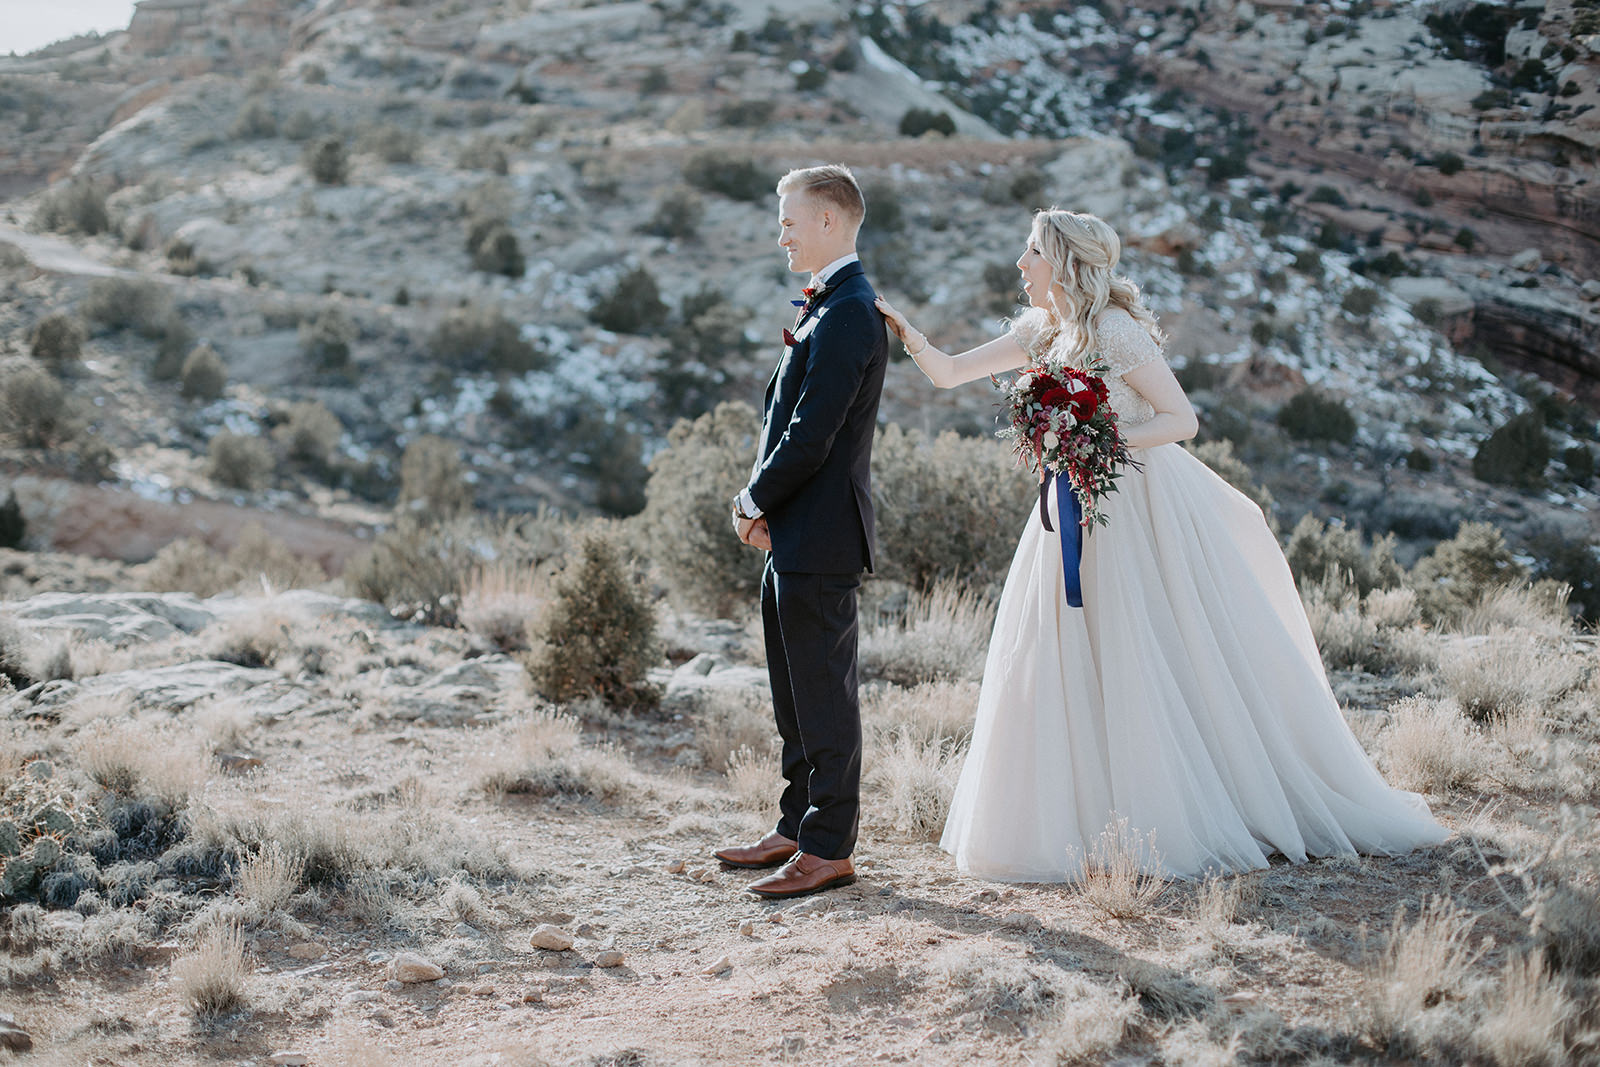 Bride tapping groom on shoulder during first look in desert of Grand Junction